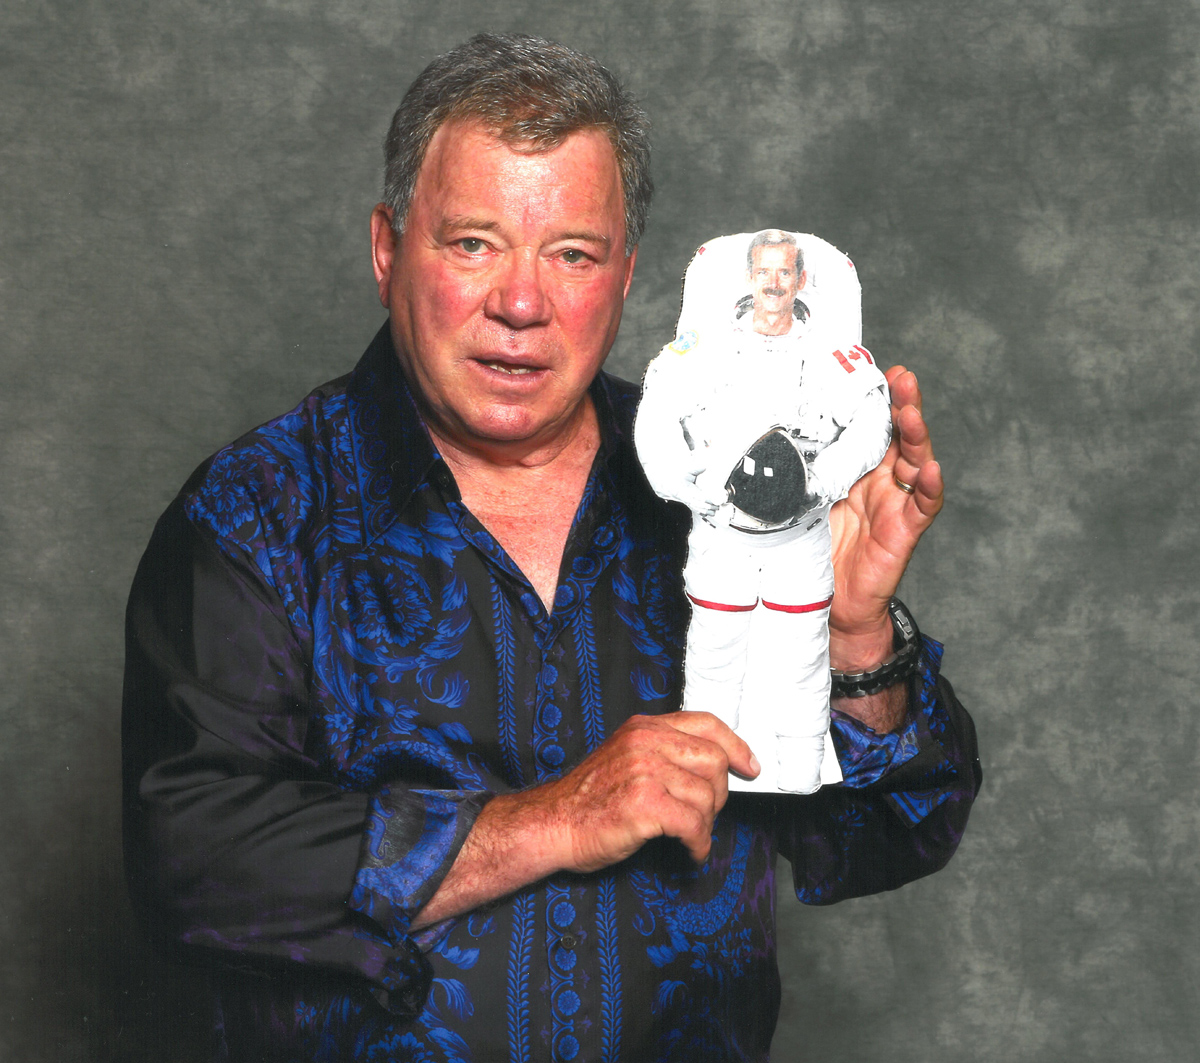 Beam Me Up! William Shatner Tweets With Astronaut in Space